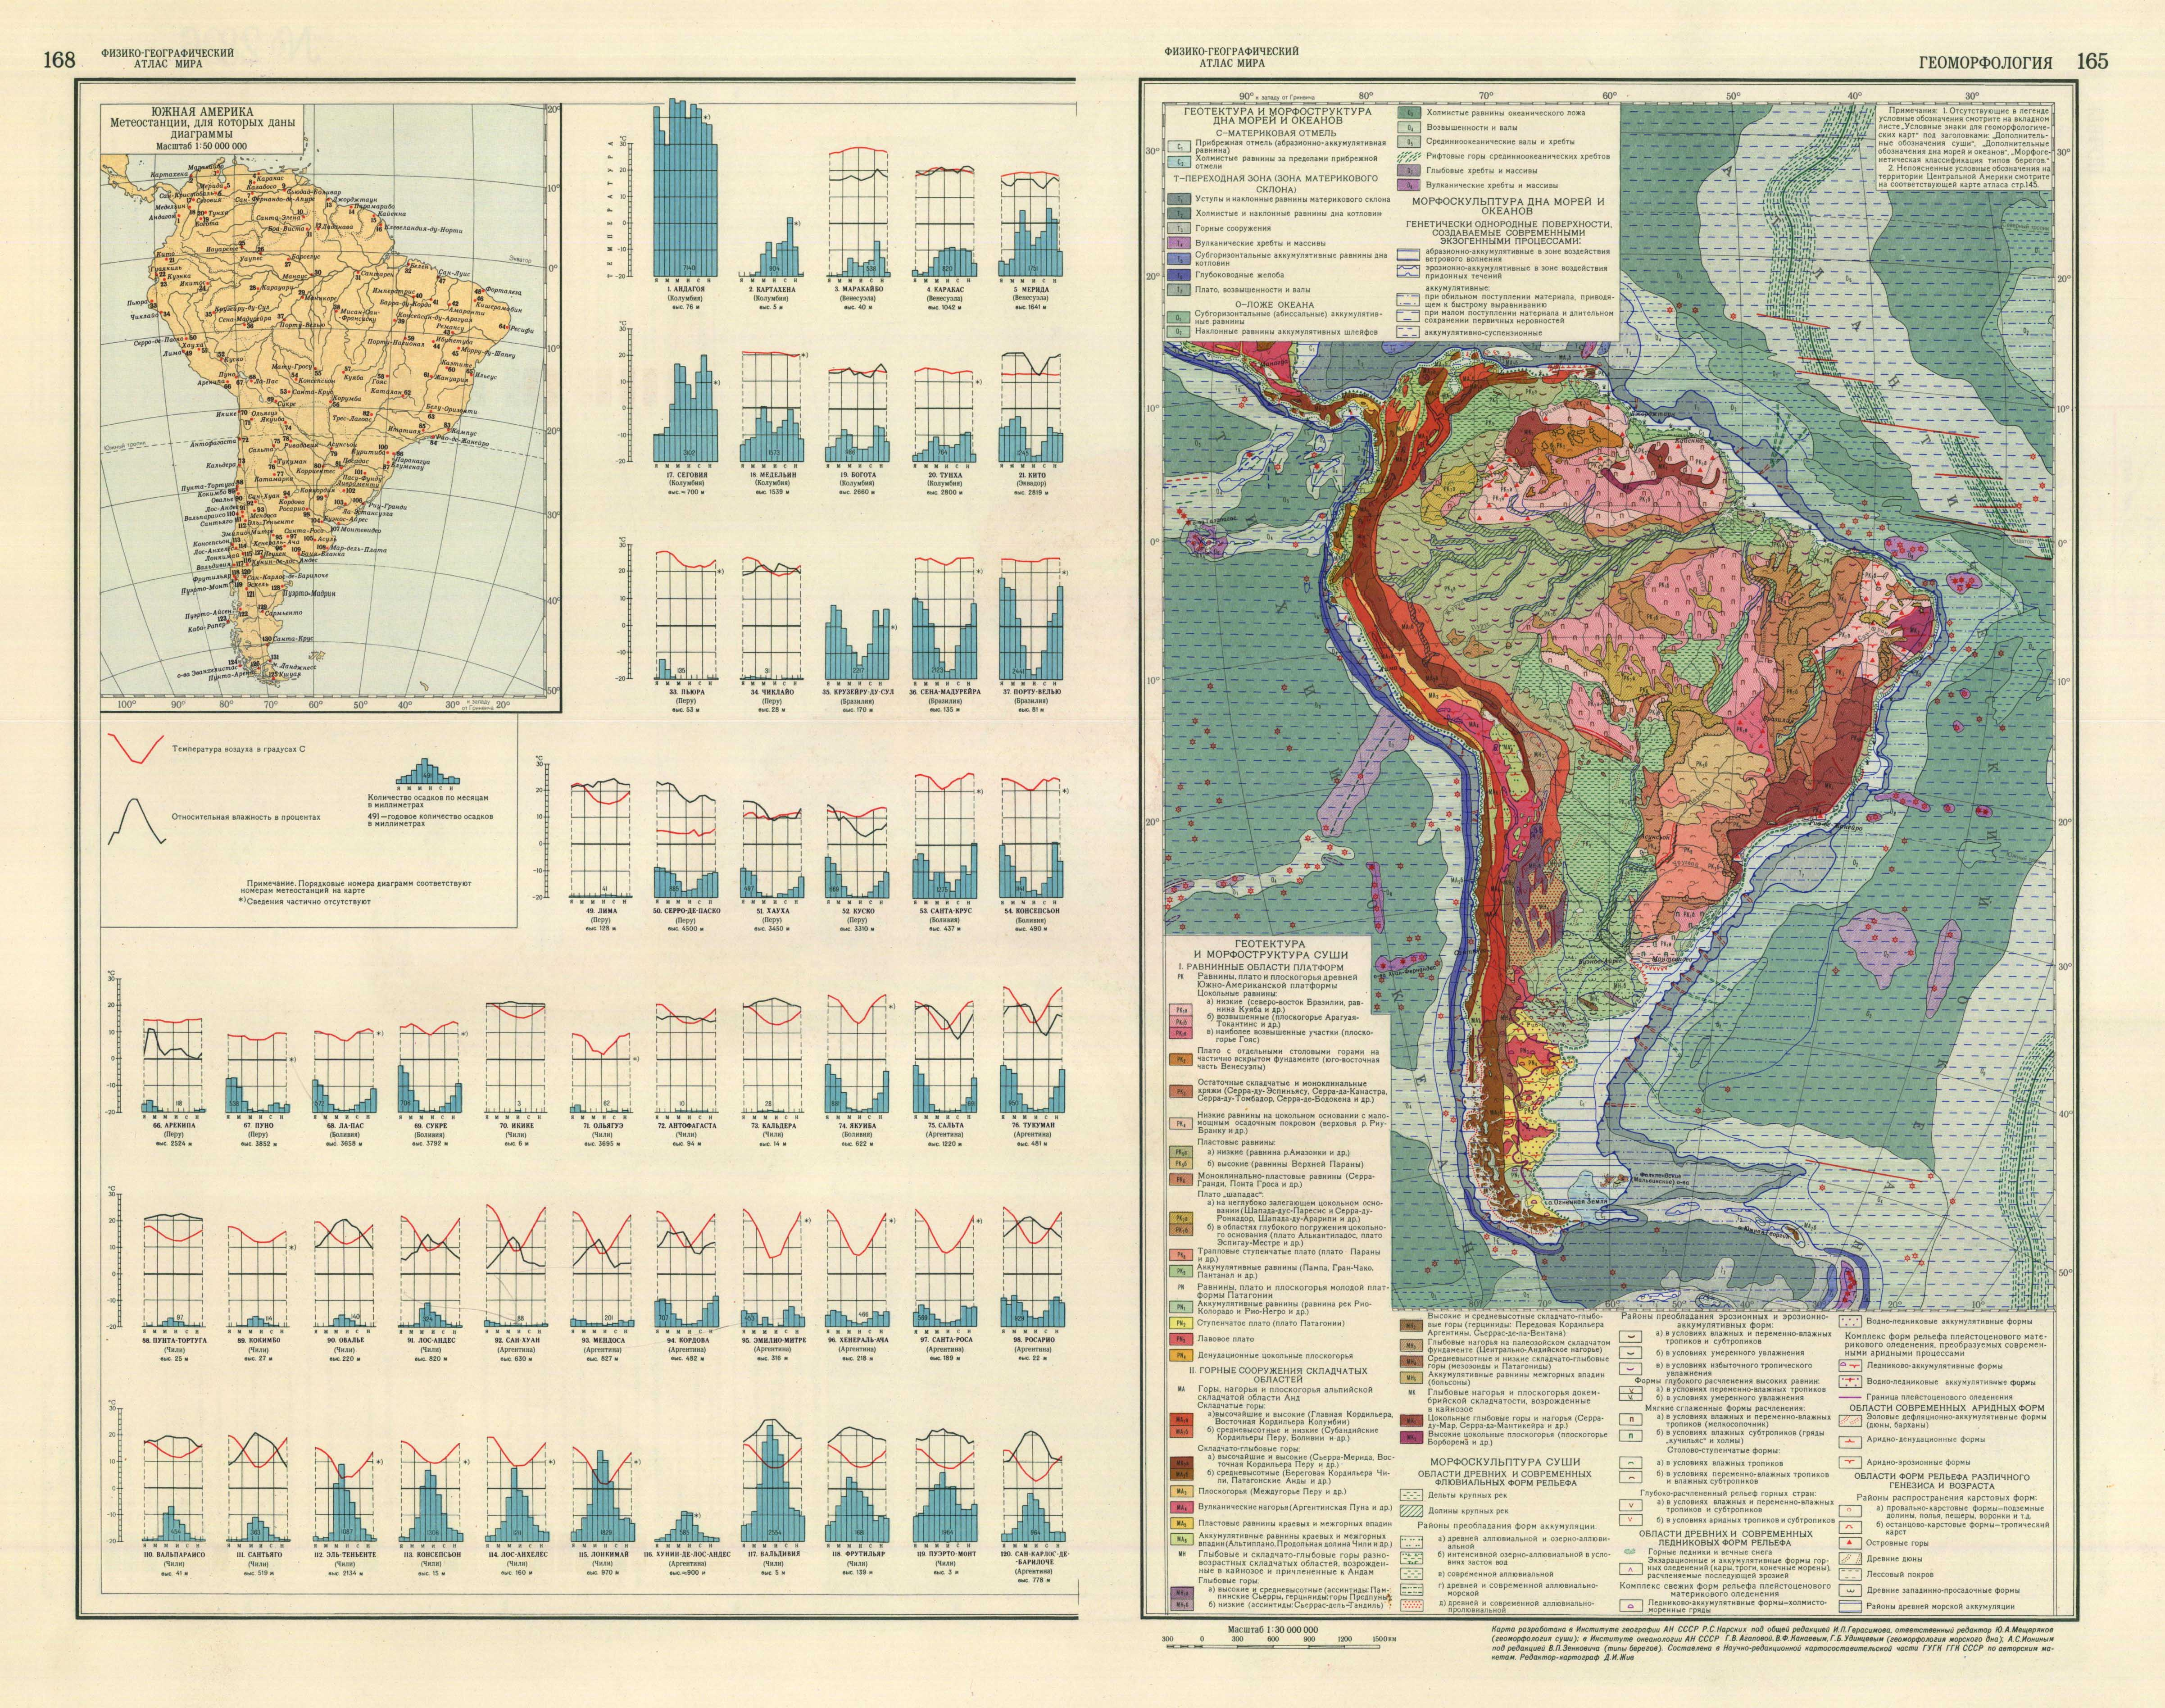 South america soil map sheet 2 esdac european commission for American soil